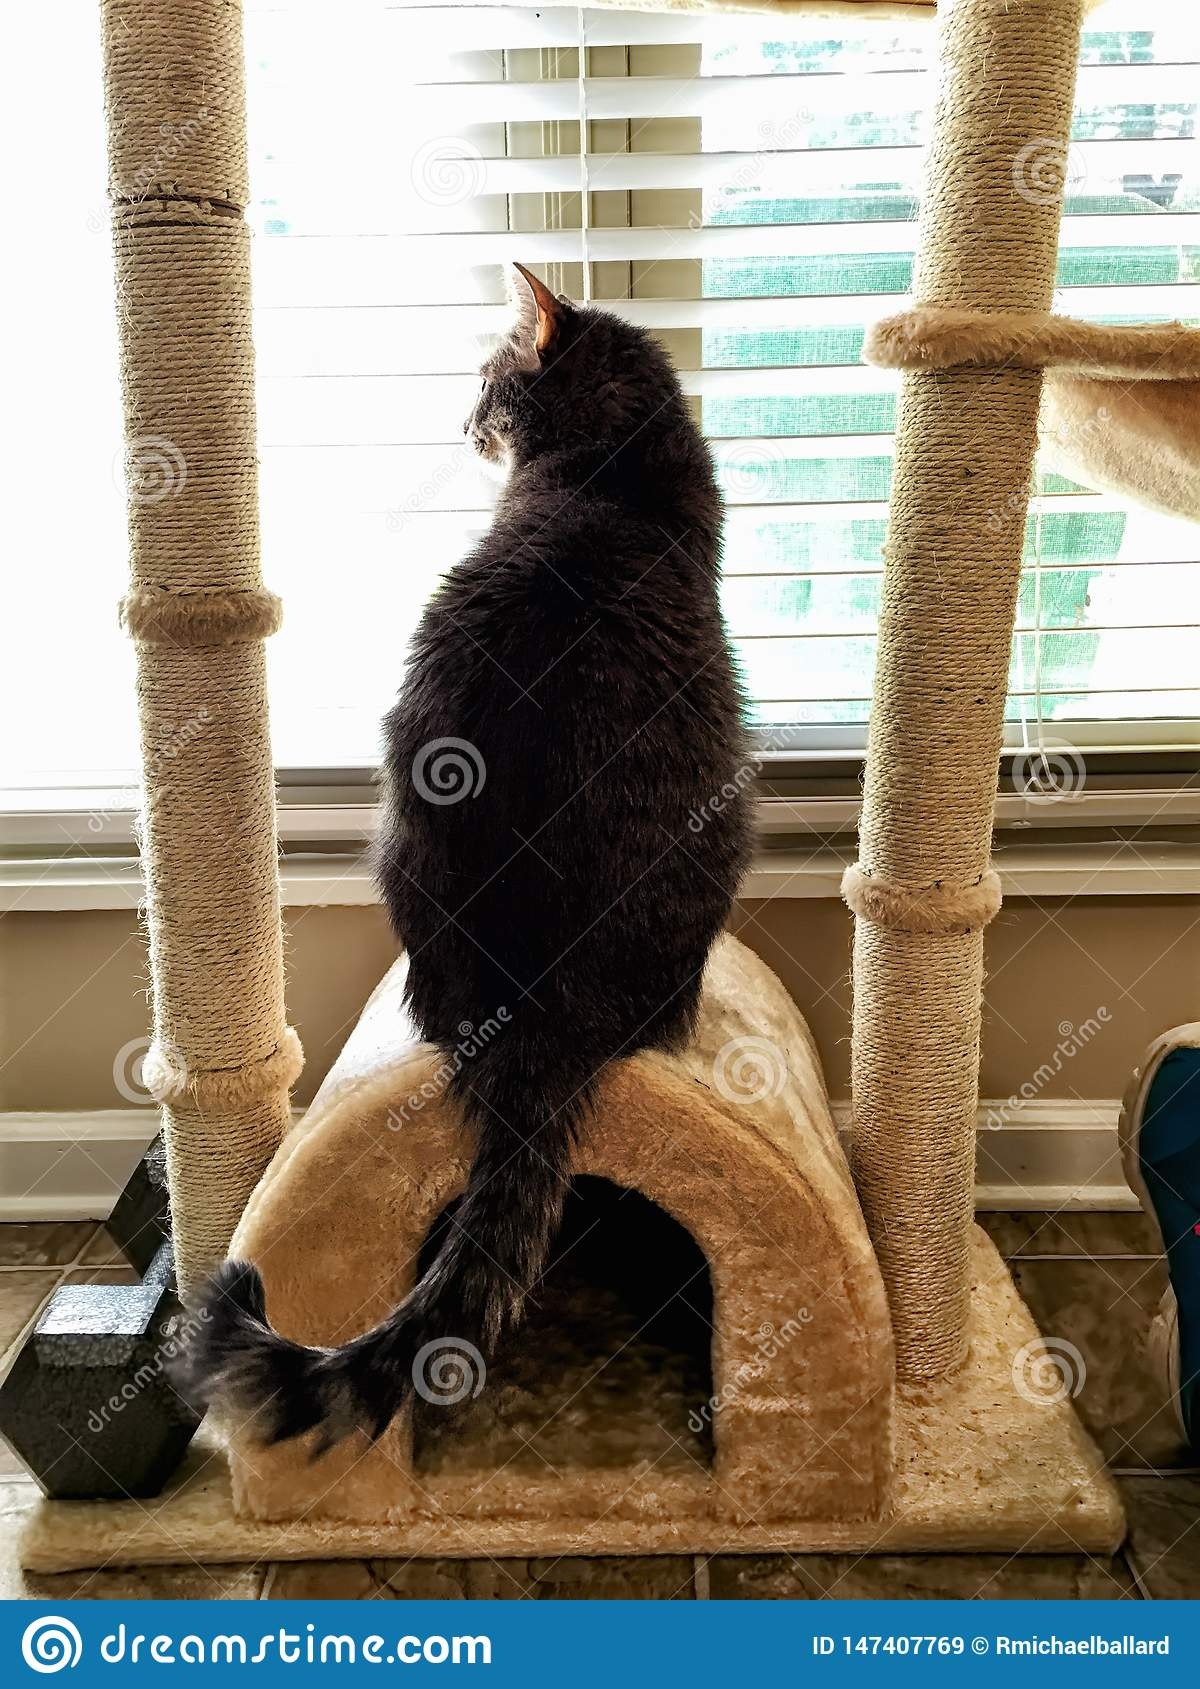 Cat Looking Out Window Longing a estar fora